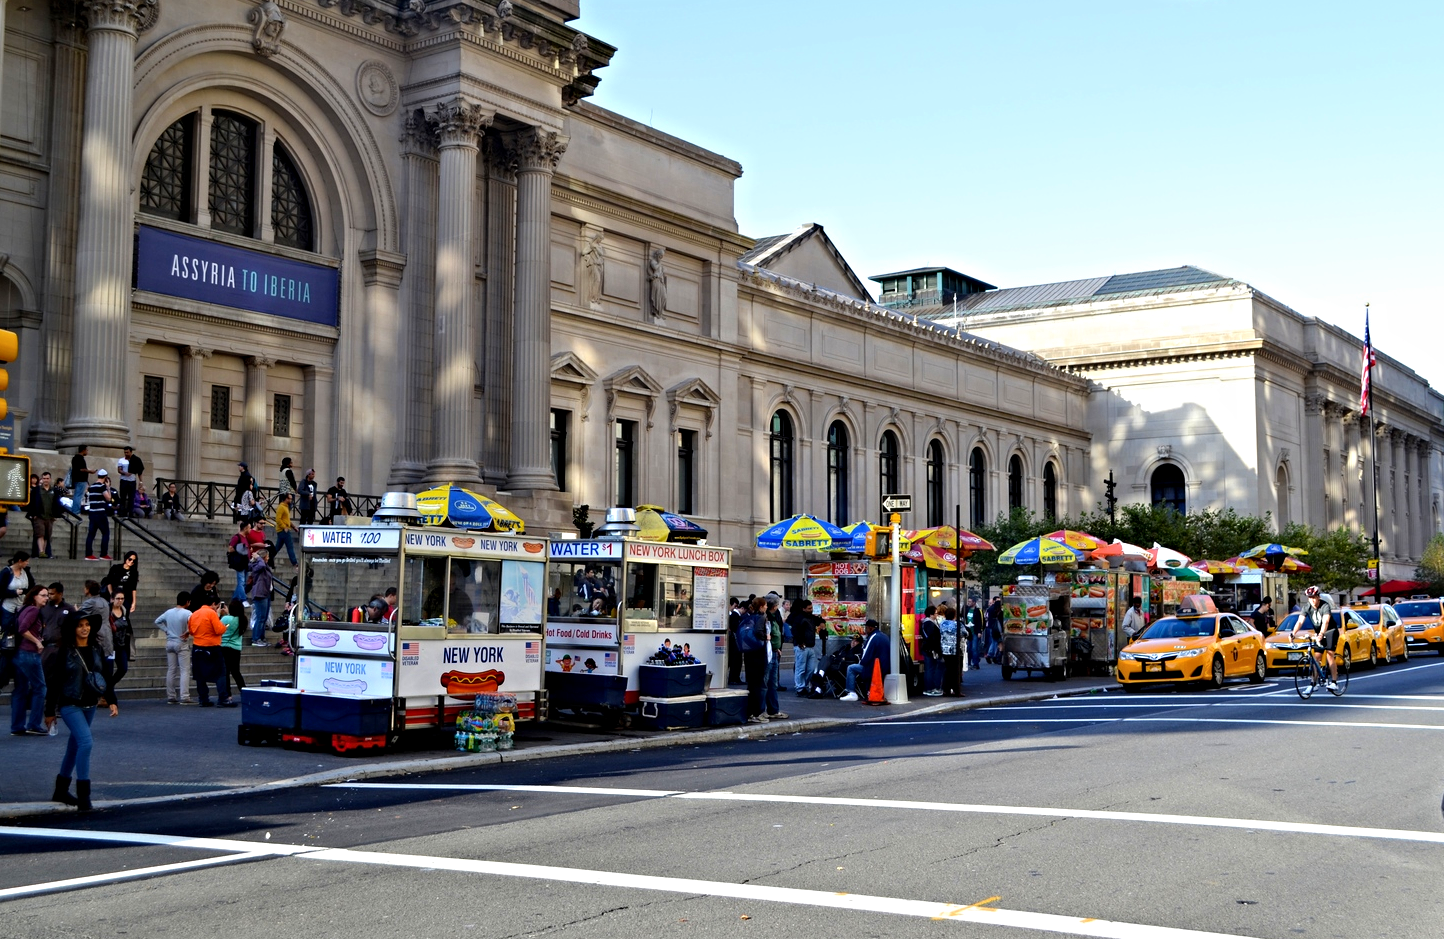 {Classic NY scene: Museum of Nat. History, hot dog stands, taxis}